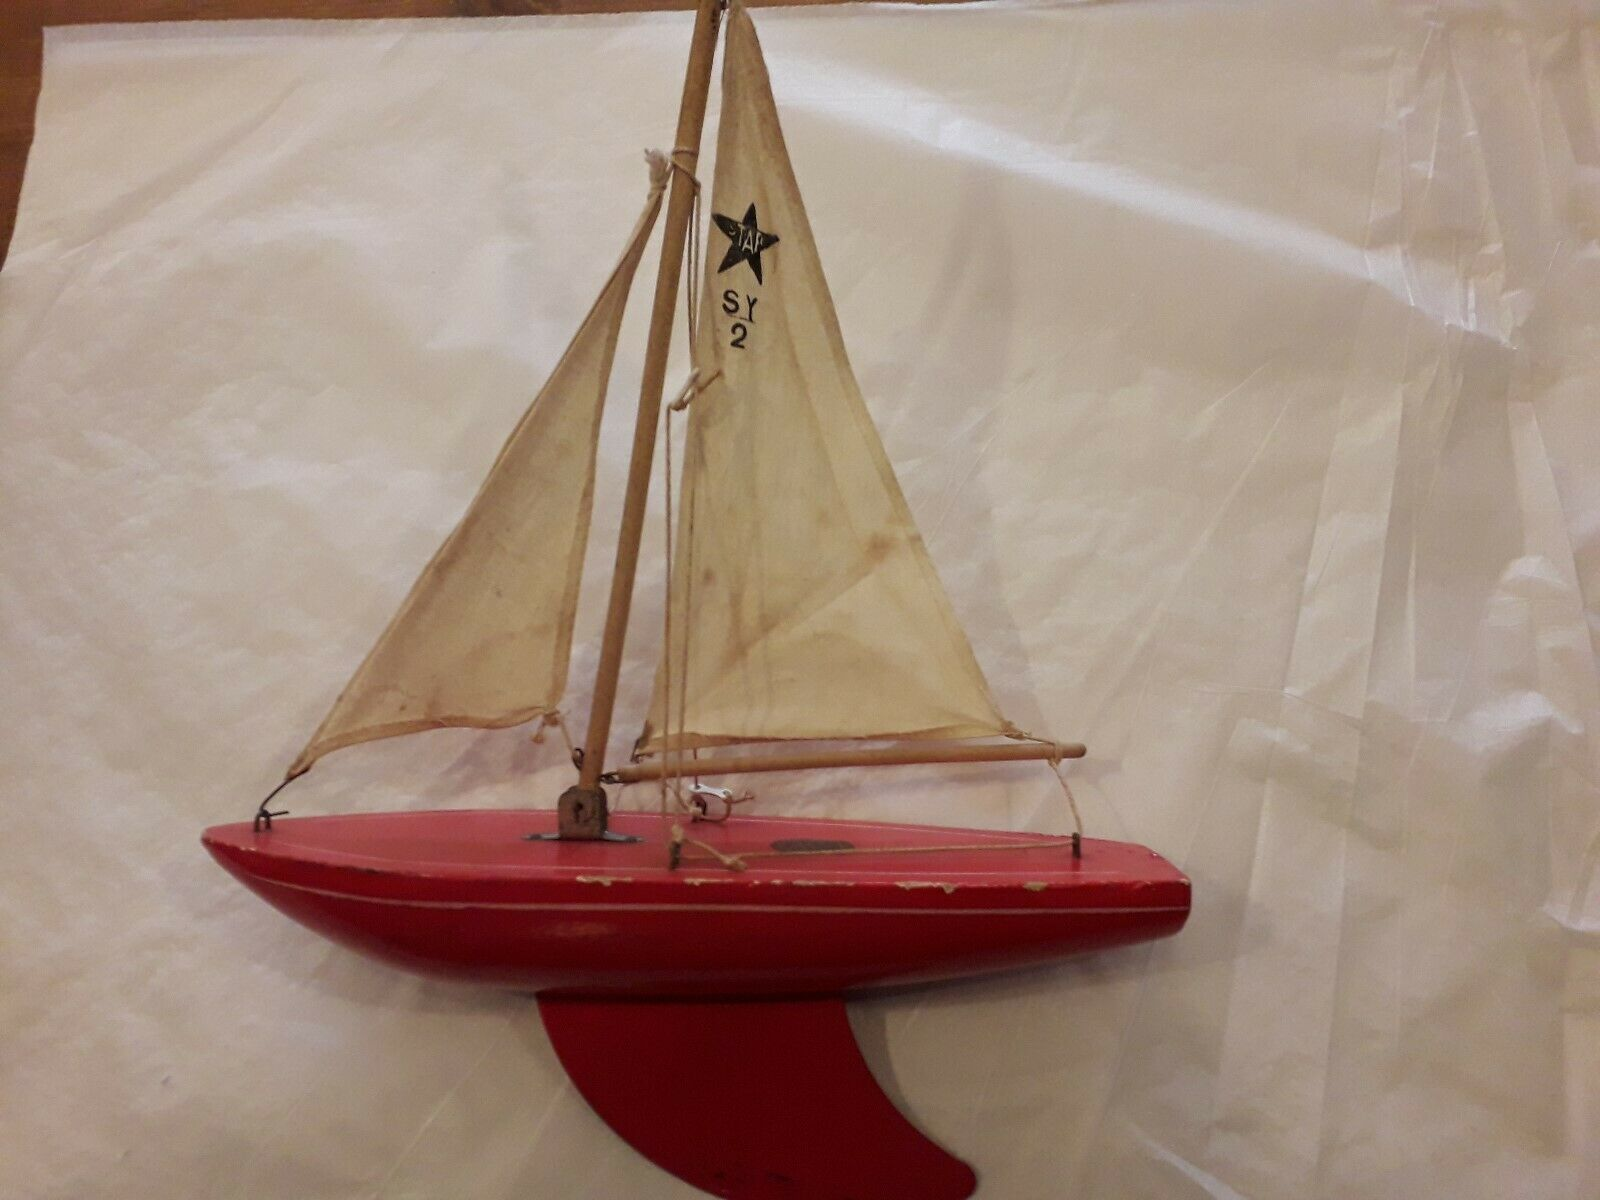 You Are Bidding On A Lovely Vintage Sy2 Star Birkenhead Yacht This Item Is Un A Used Condition With Signs Of Wear The Top Of Yacht Birkenhead Vintage Boats